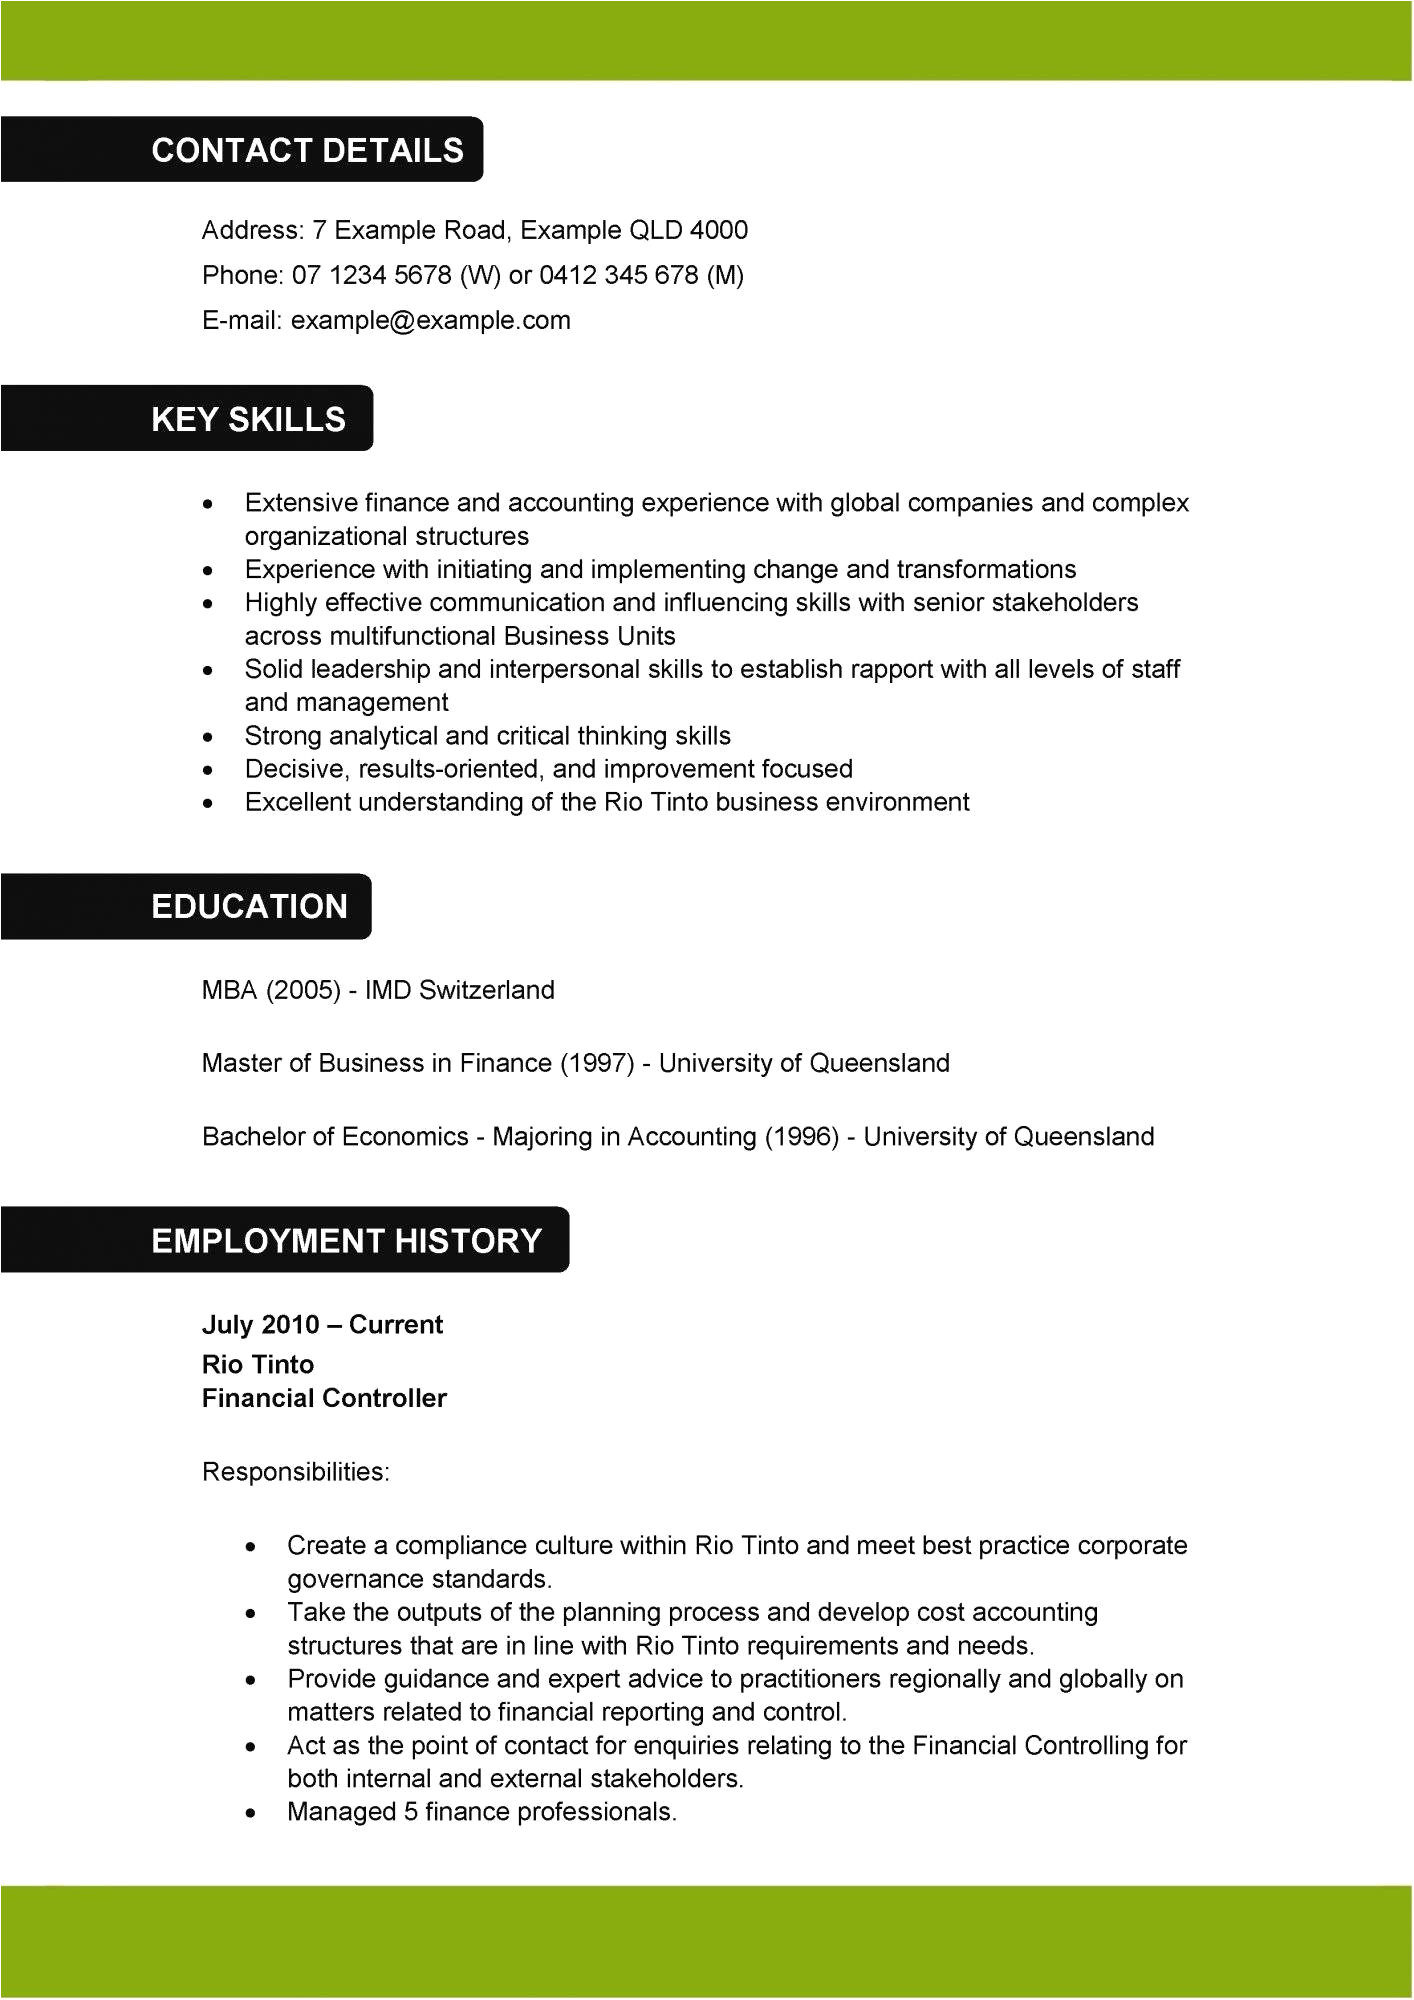 Sample Resume for Lawn Care Worker Aged Care Worker Resume Cmt sonabel org